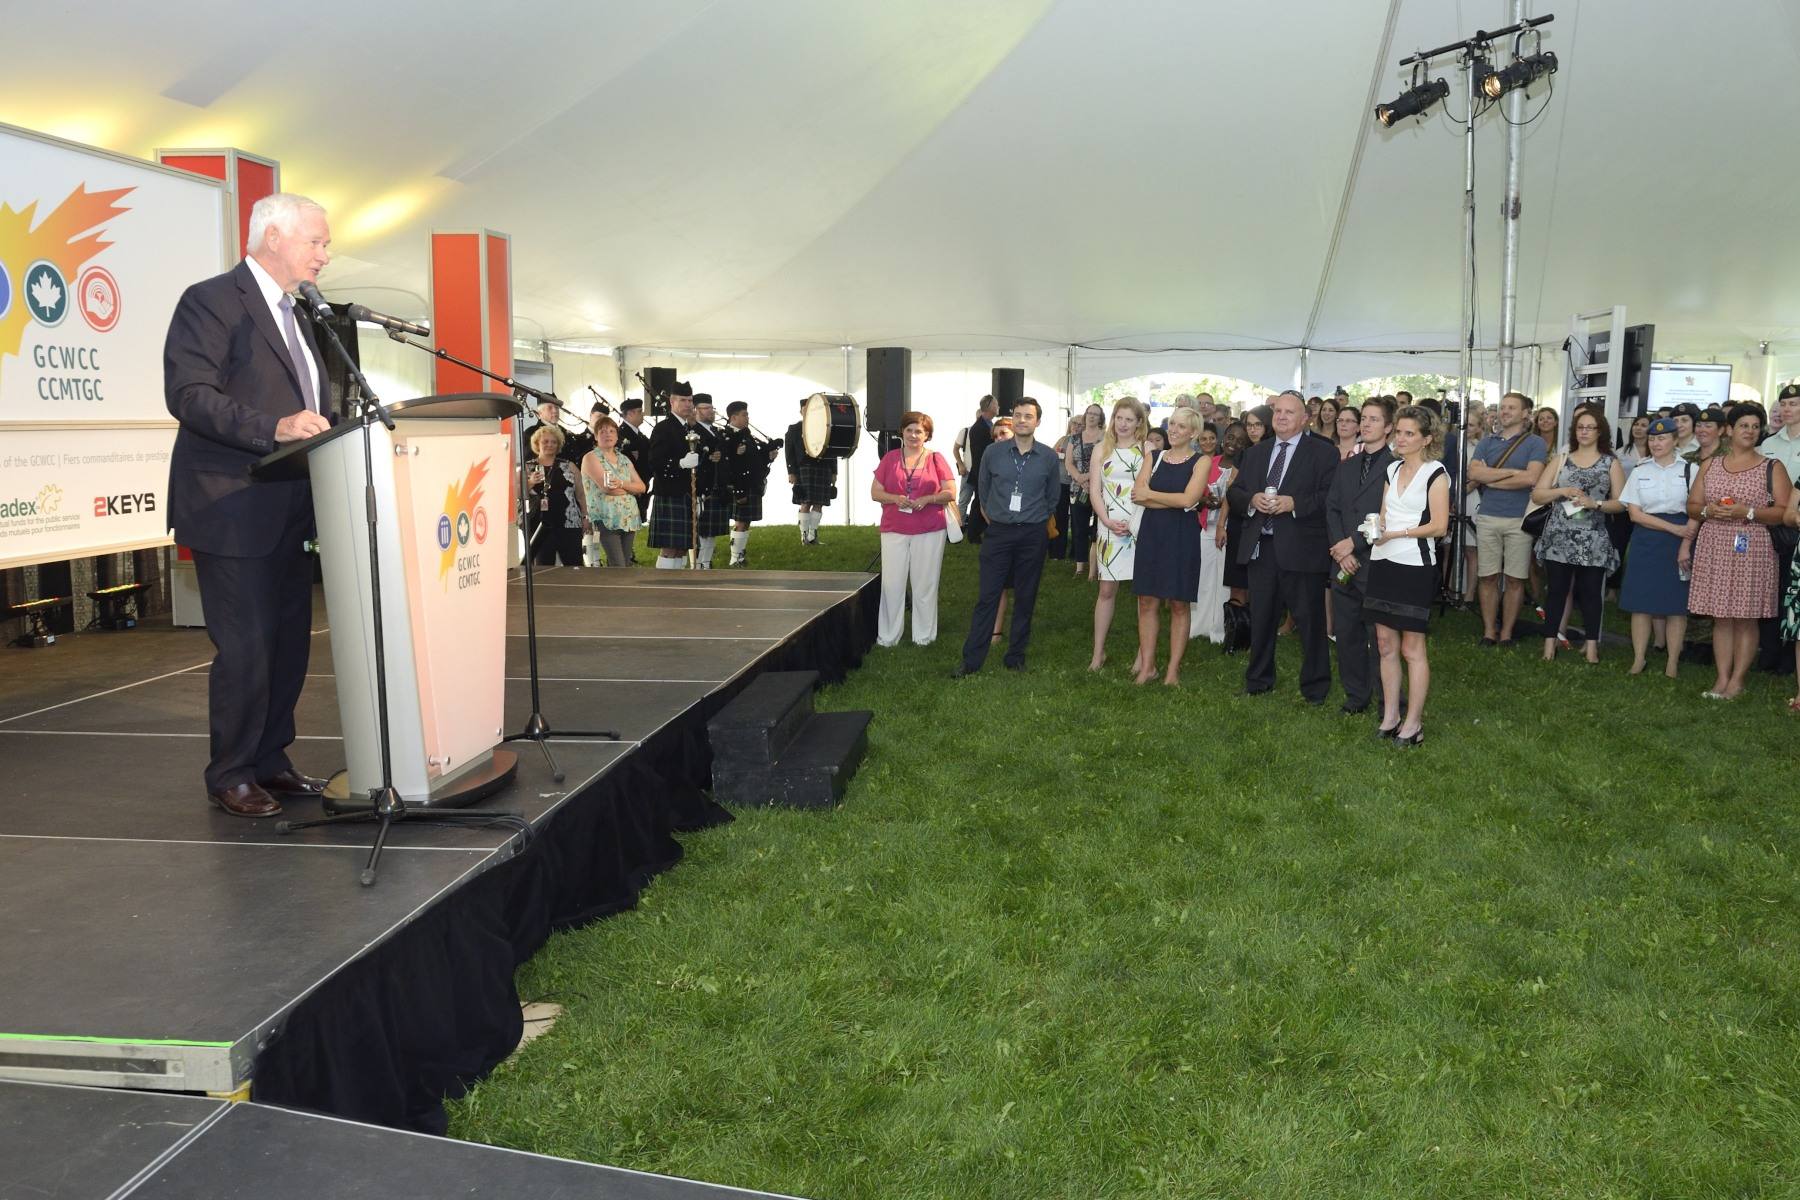 As patron of United Way Canada, His Excellency hosted the launch of the National Government of Canada Workplace Charitable Campaign for 2015.